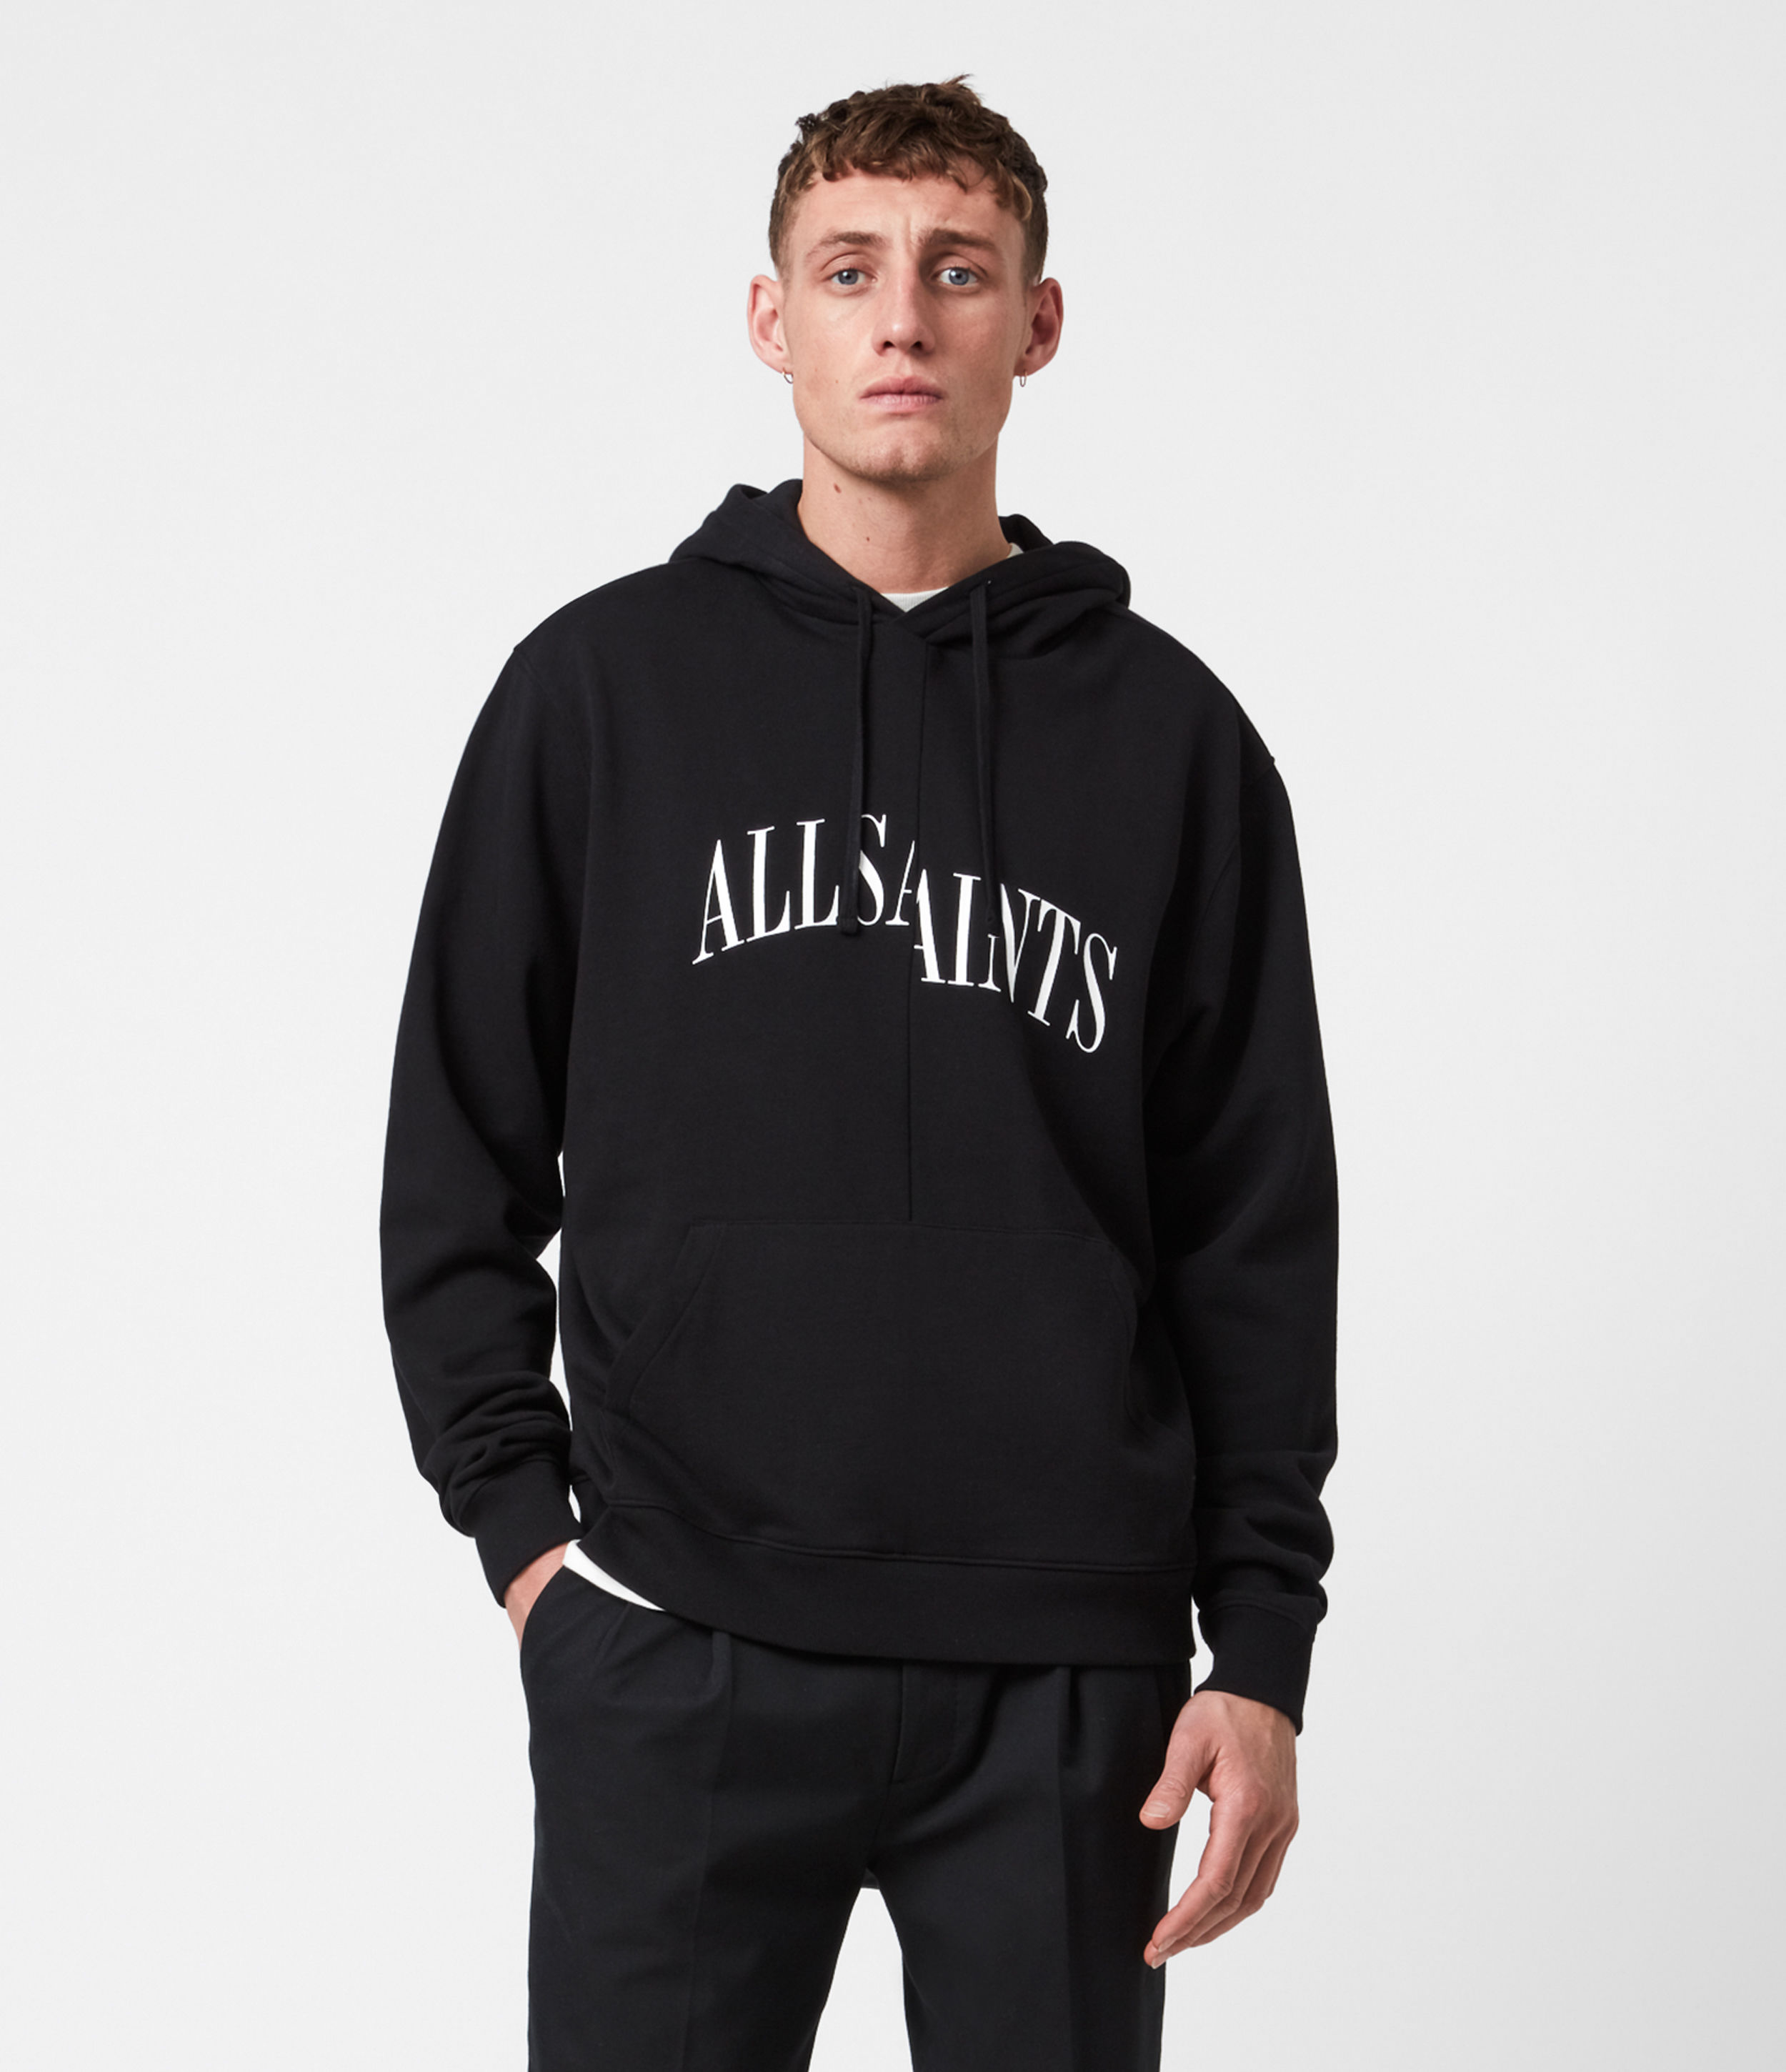 AllSaints Men's Cotton Logo Print Relaxed Fit Dropout Pullover Hoodie, Black, Size: XXL